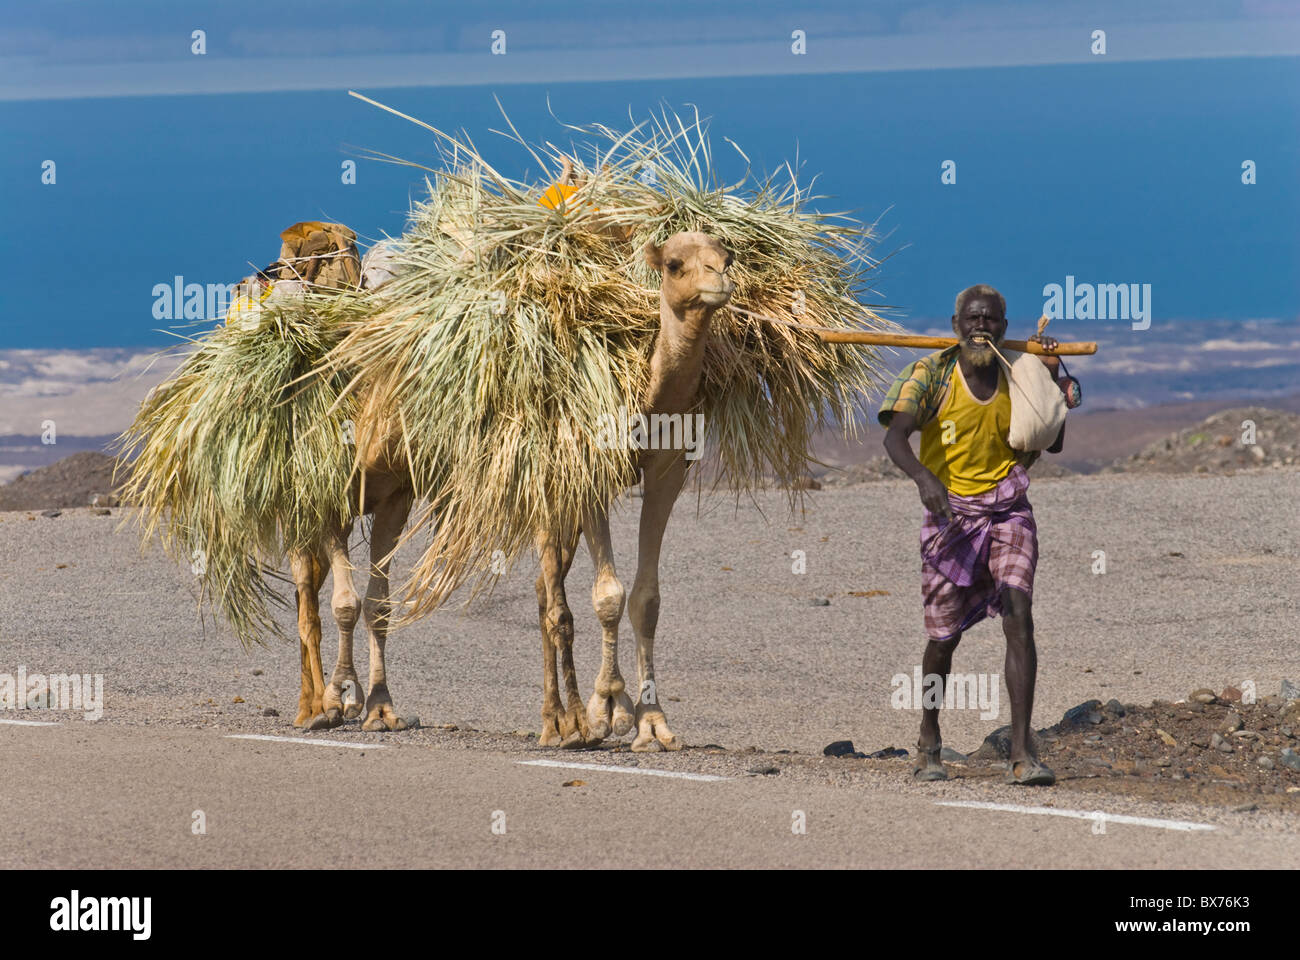 Afar tribesman with his camels on his way home, Tadjoura, Republic of Djibouti, Africa - Stock Image